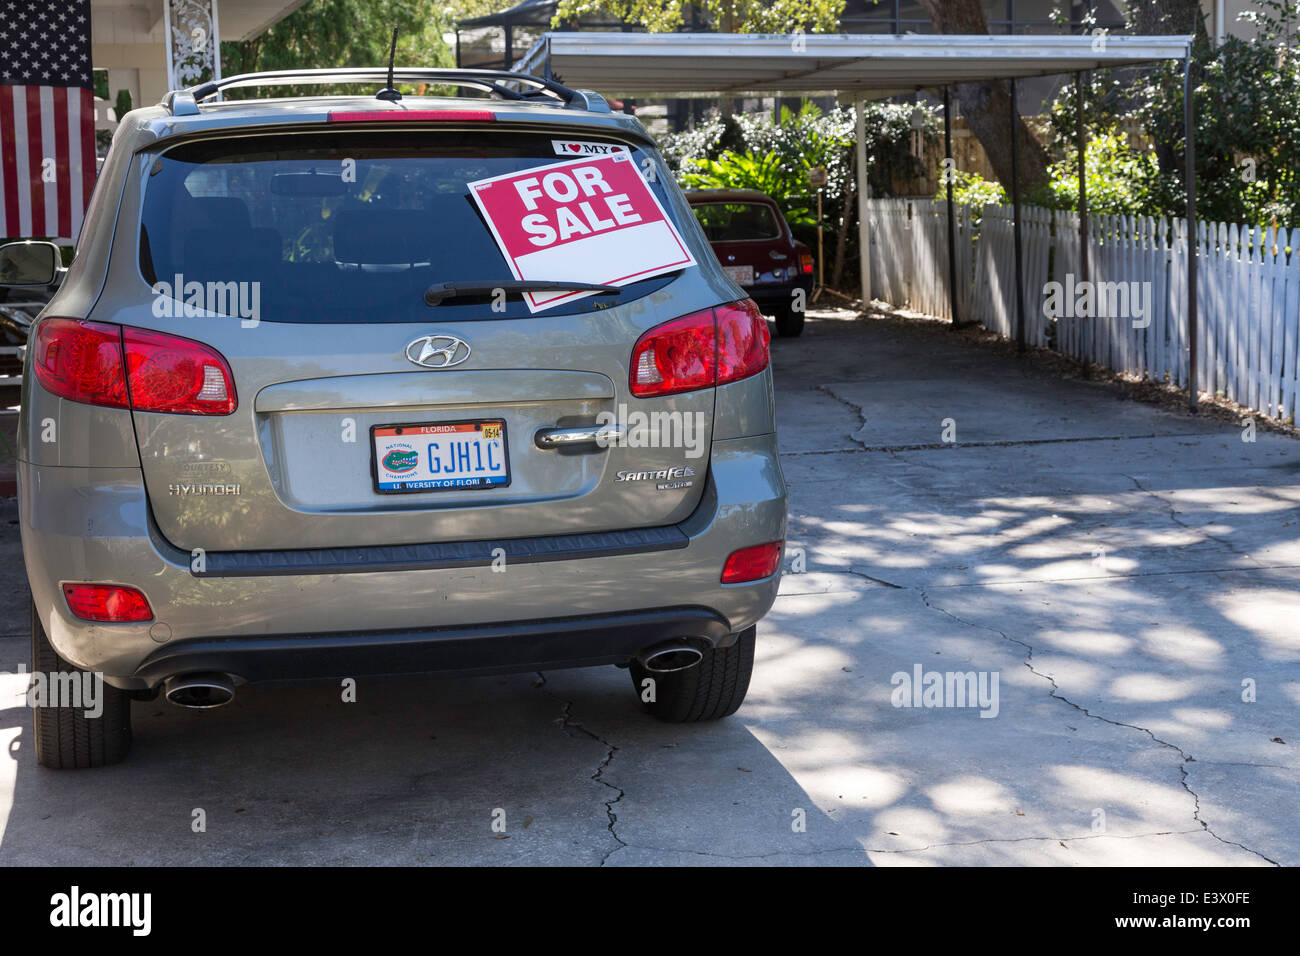 Used Car For Sale by Owner, USA Stock Photo, Royalty Free Image ...